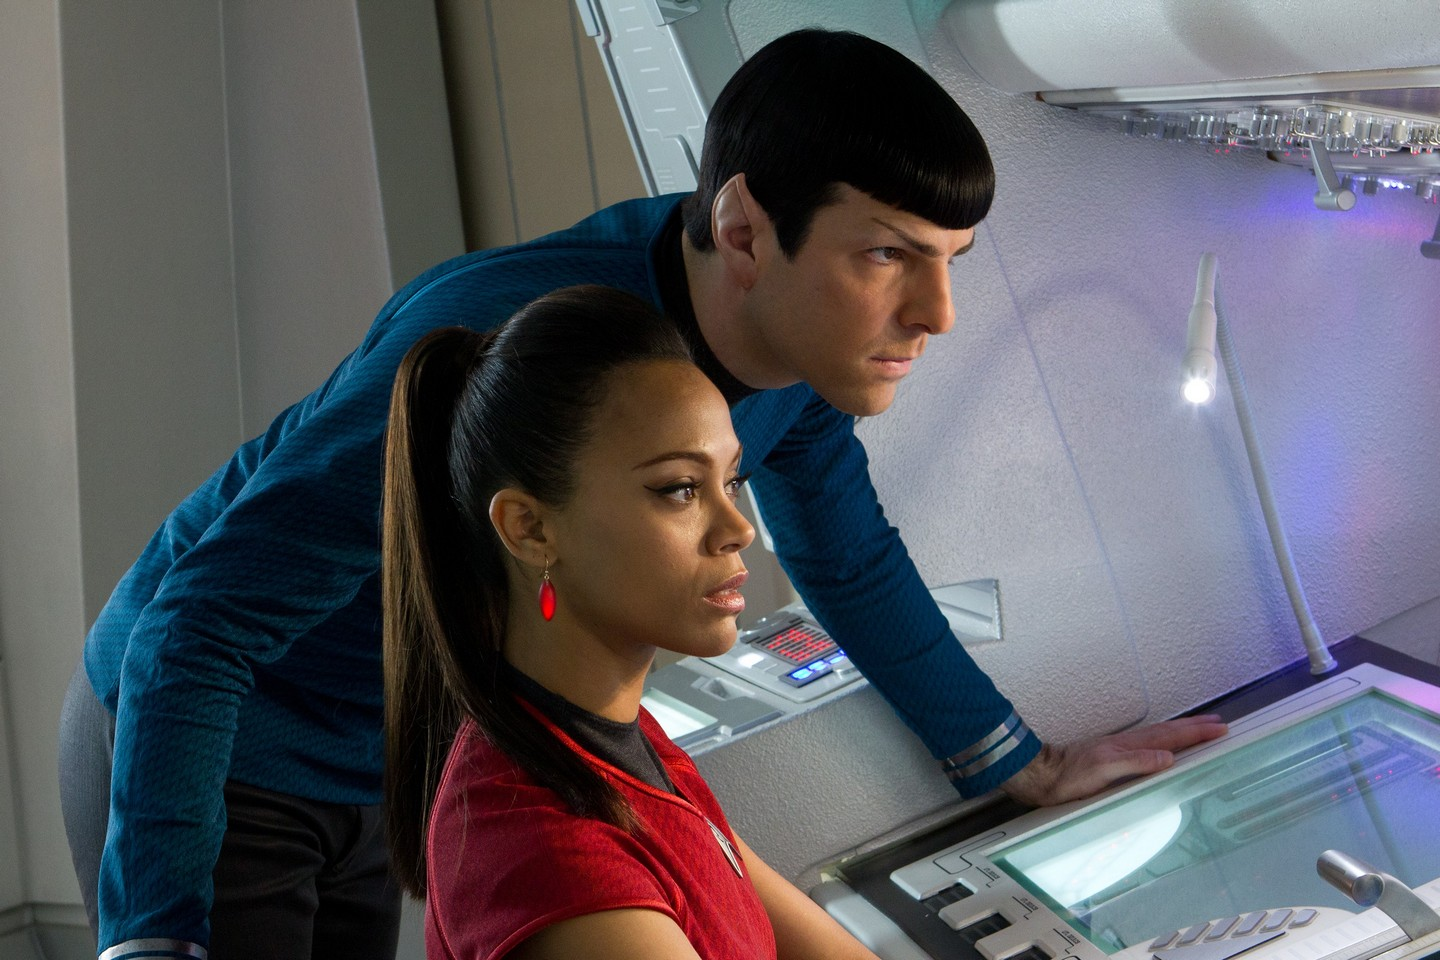 Zachary Quinto as Spock and Zoe Saldana as Uhura examining a console in Star Trek Into Darkness